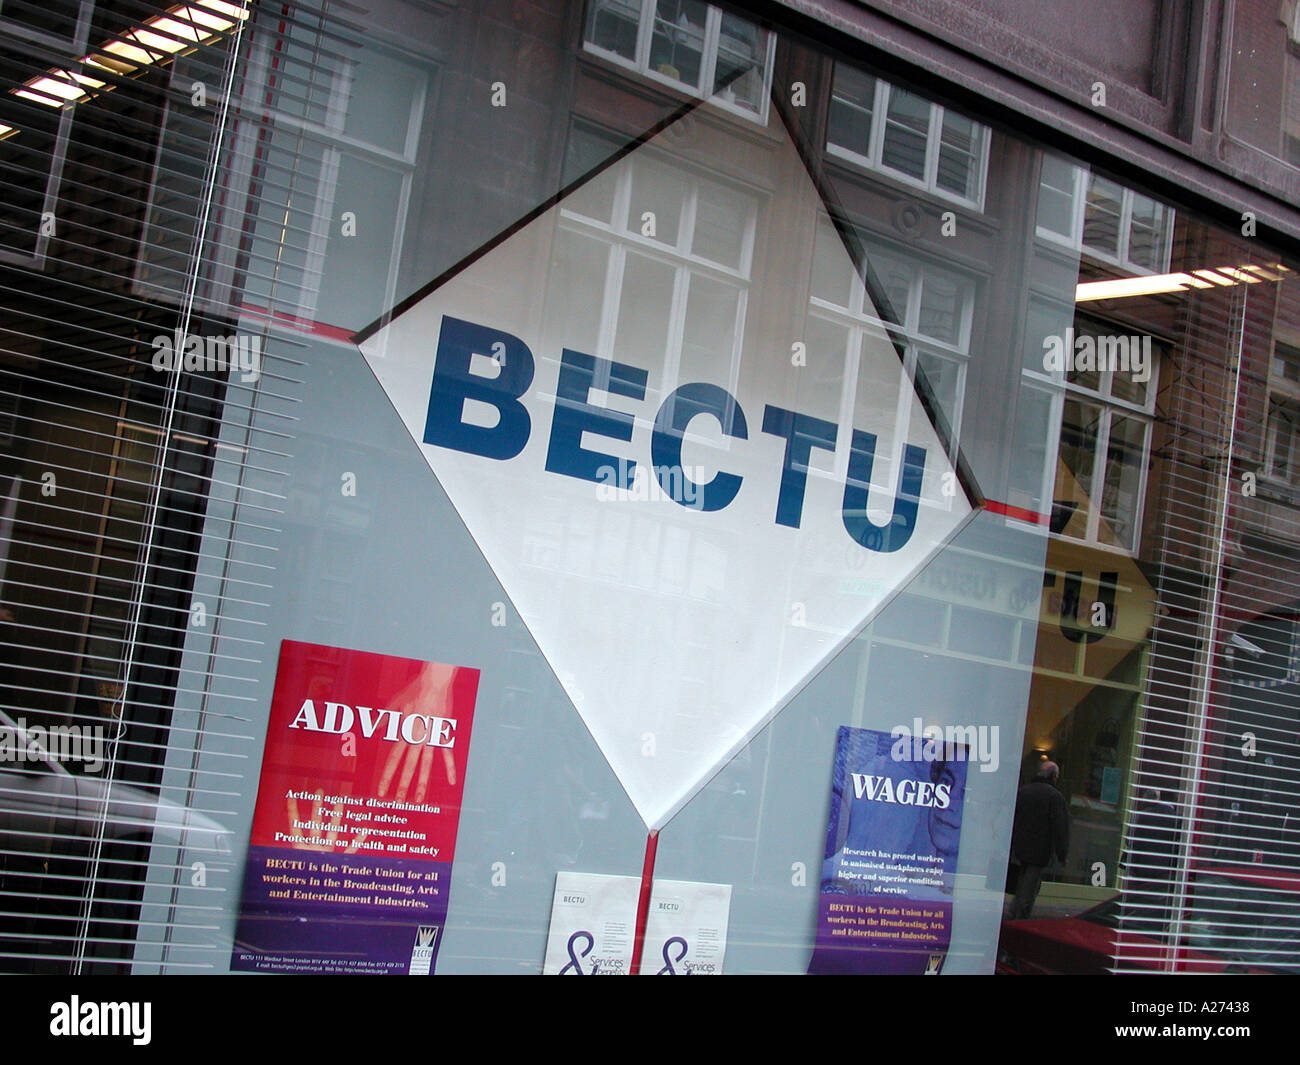 BECTU, Broadcasting Entertainment Communications and Theatre Union  Trade Union offices at 100 Wardour Street, Soho, City of Westminster, London. - Stock Image